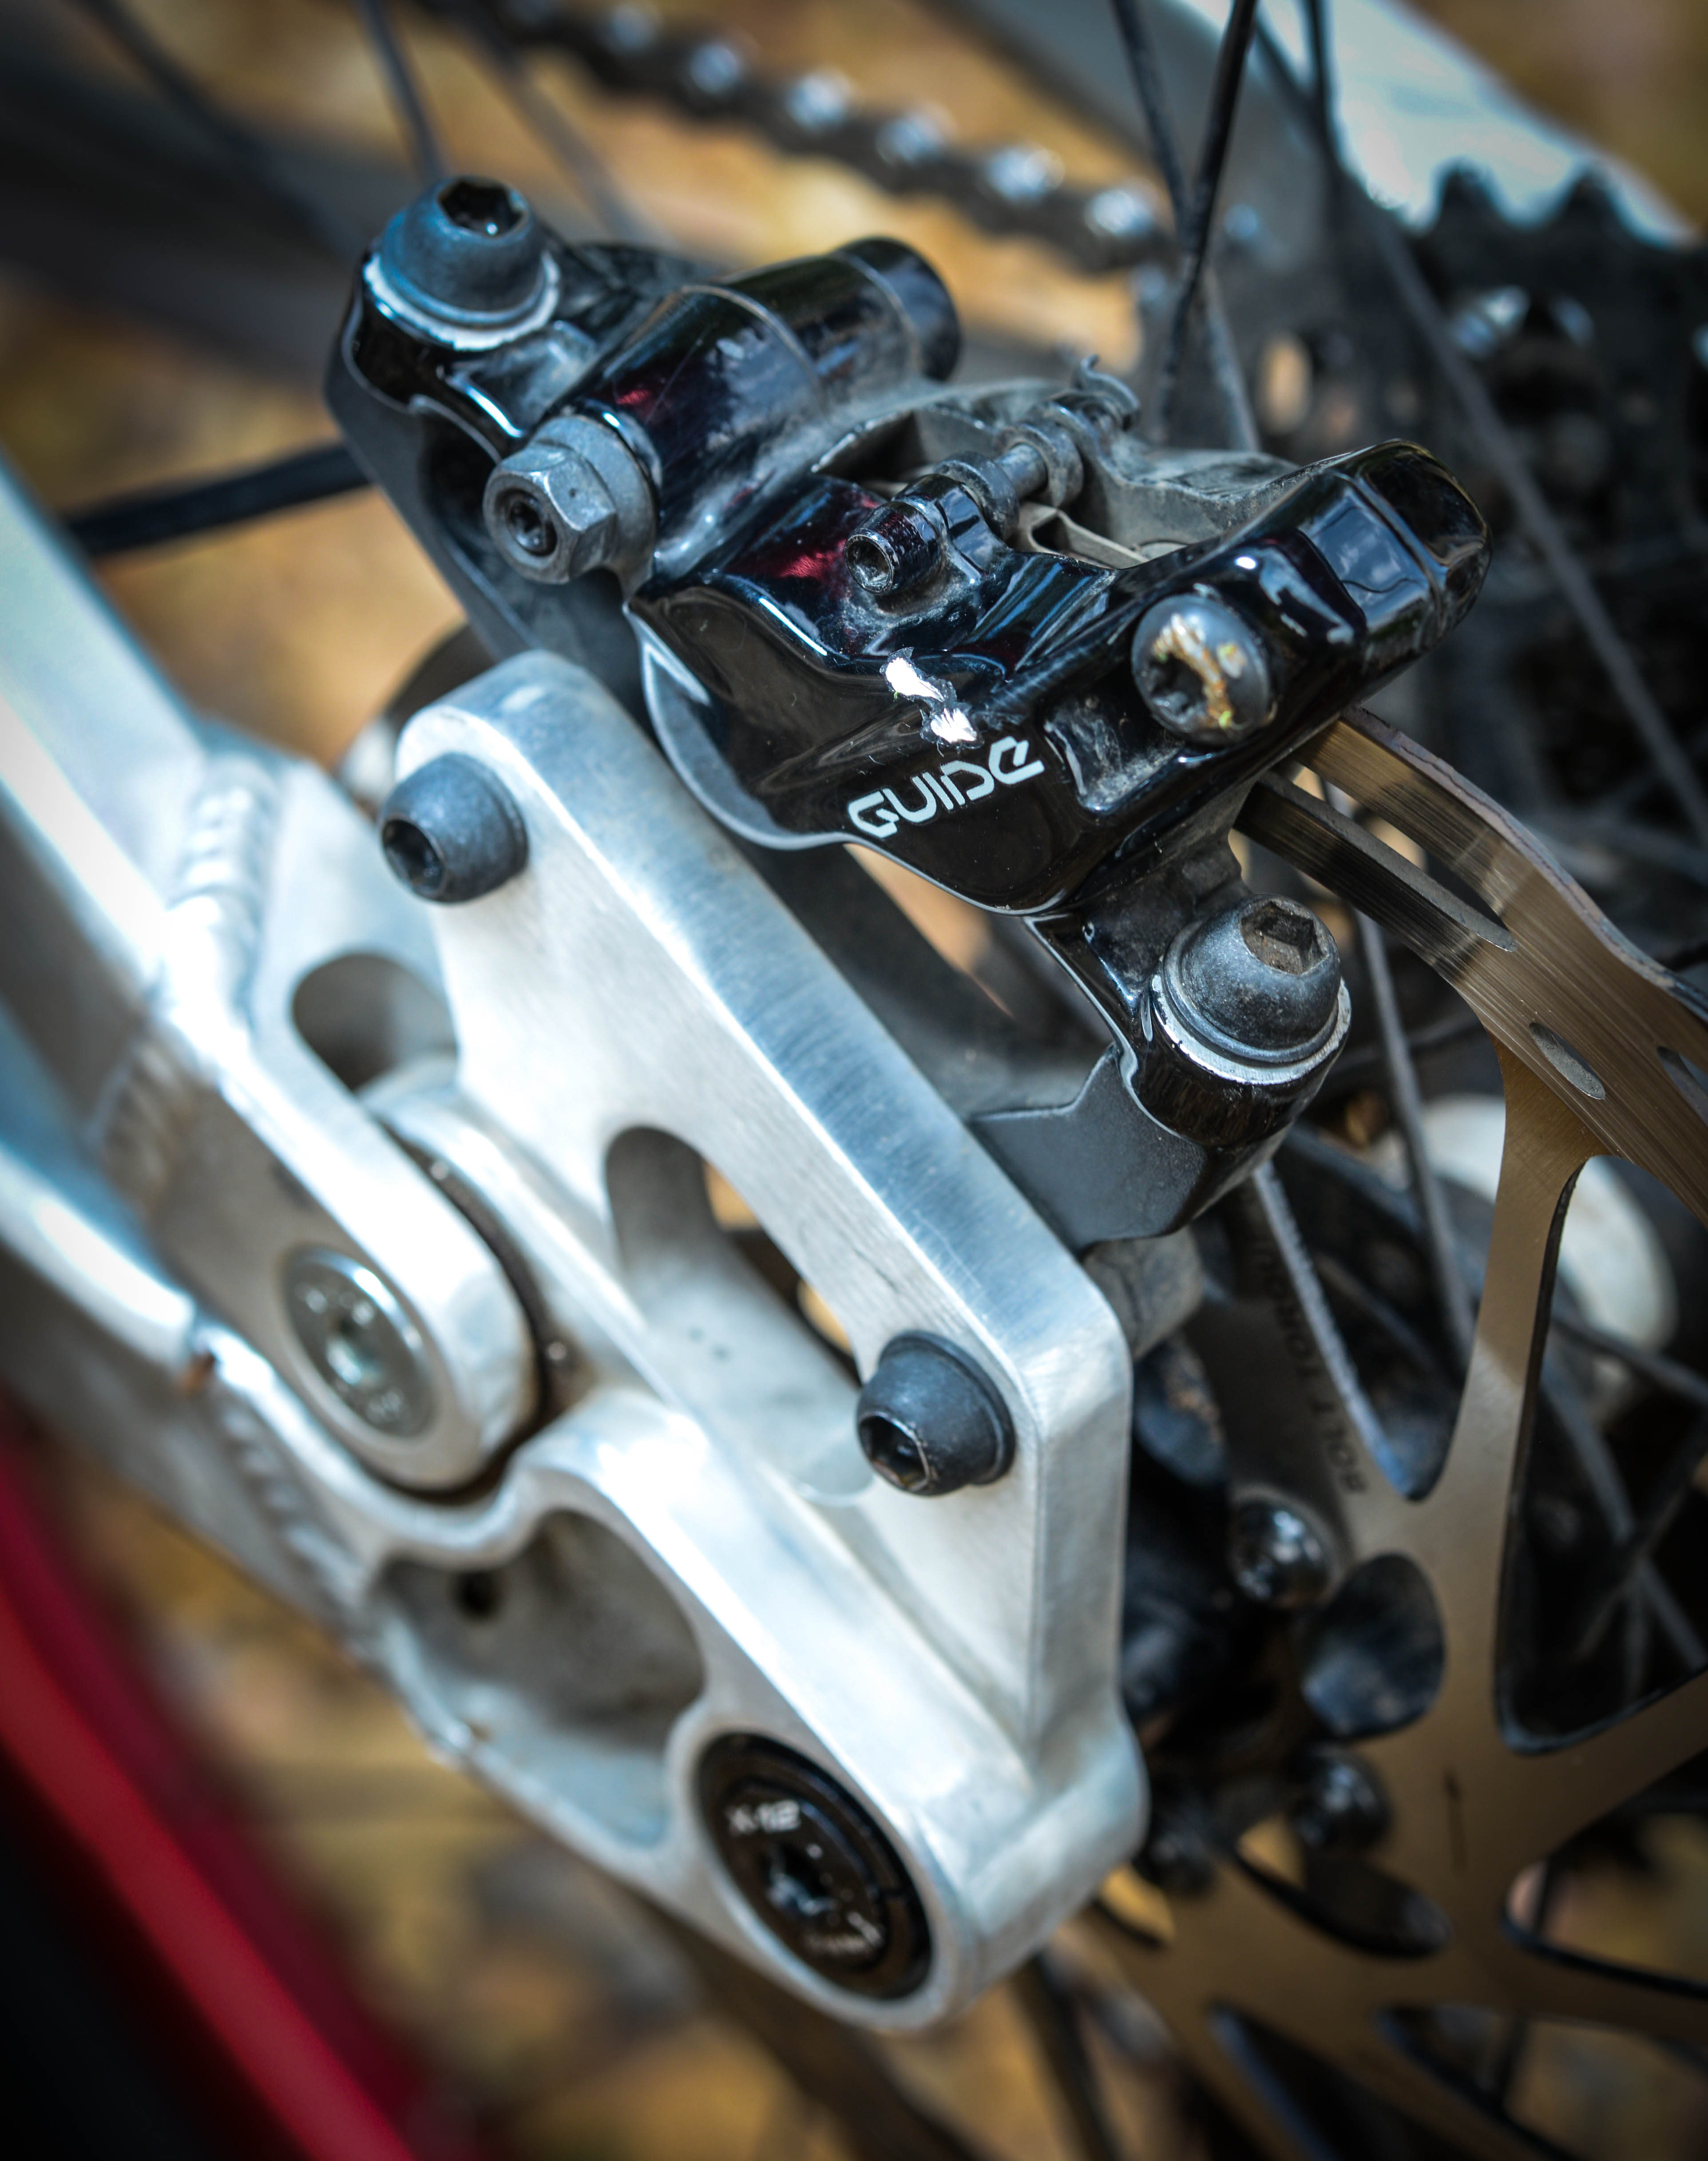 The rear linkage is the pinnacle of race-inspired engineering and keeps the piston tucked away nicely